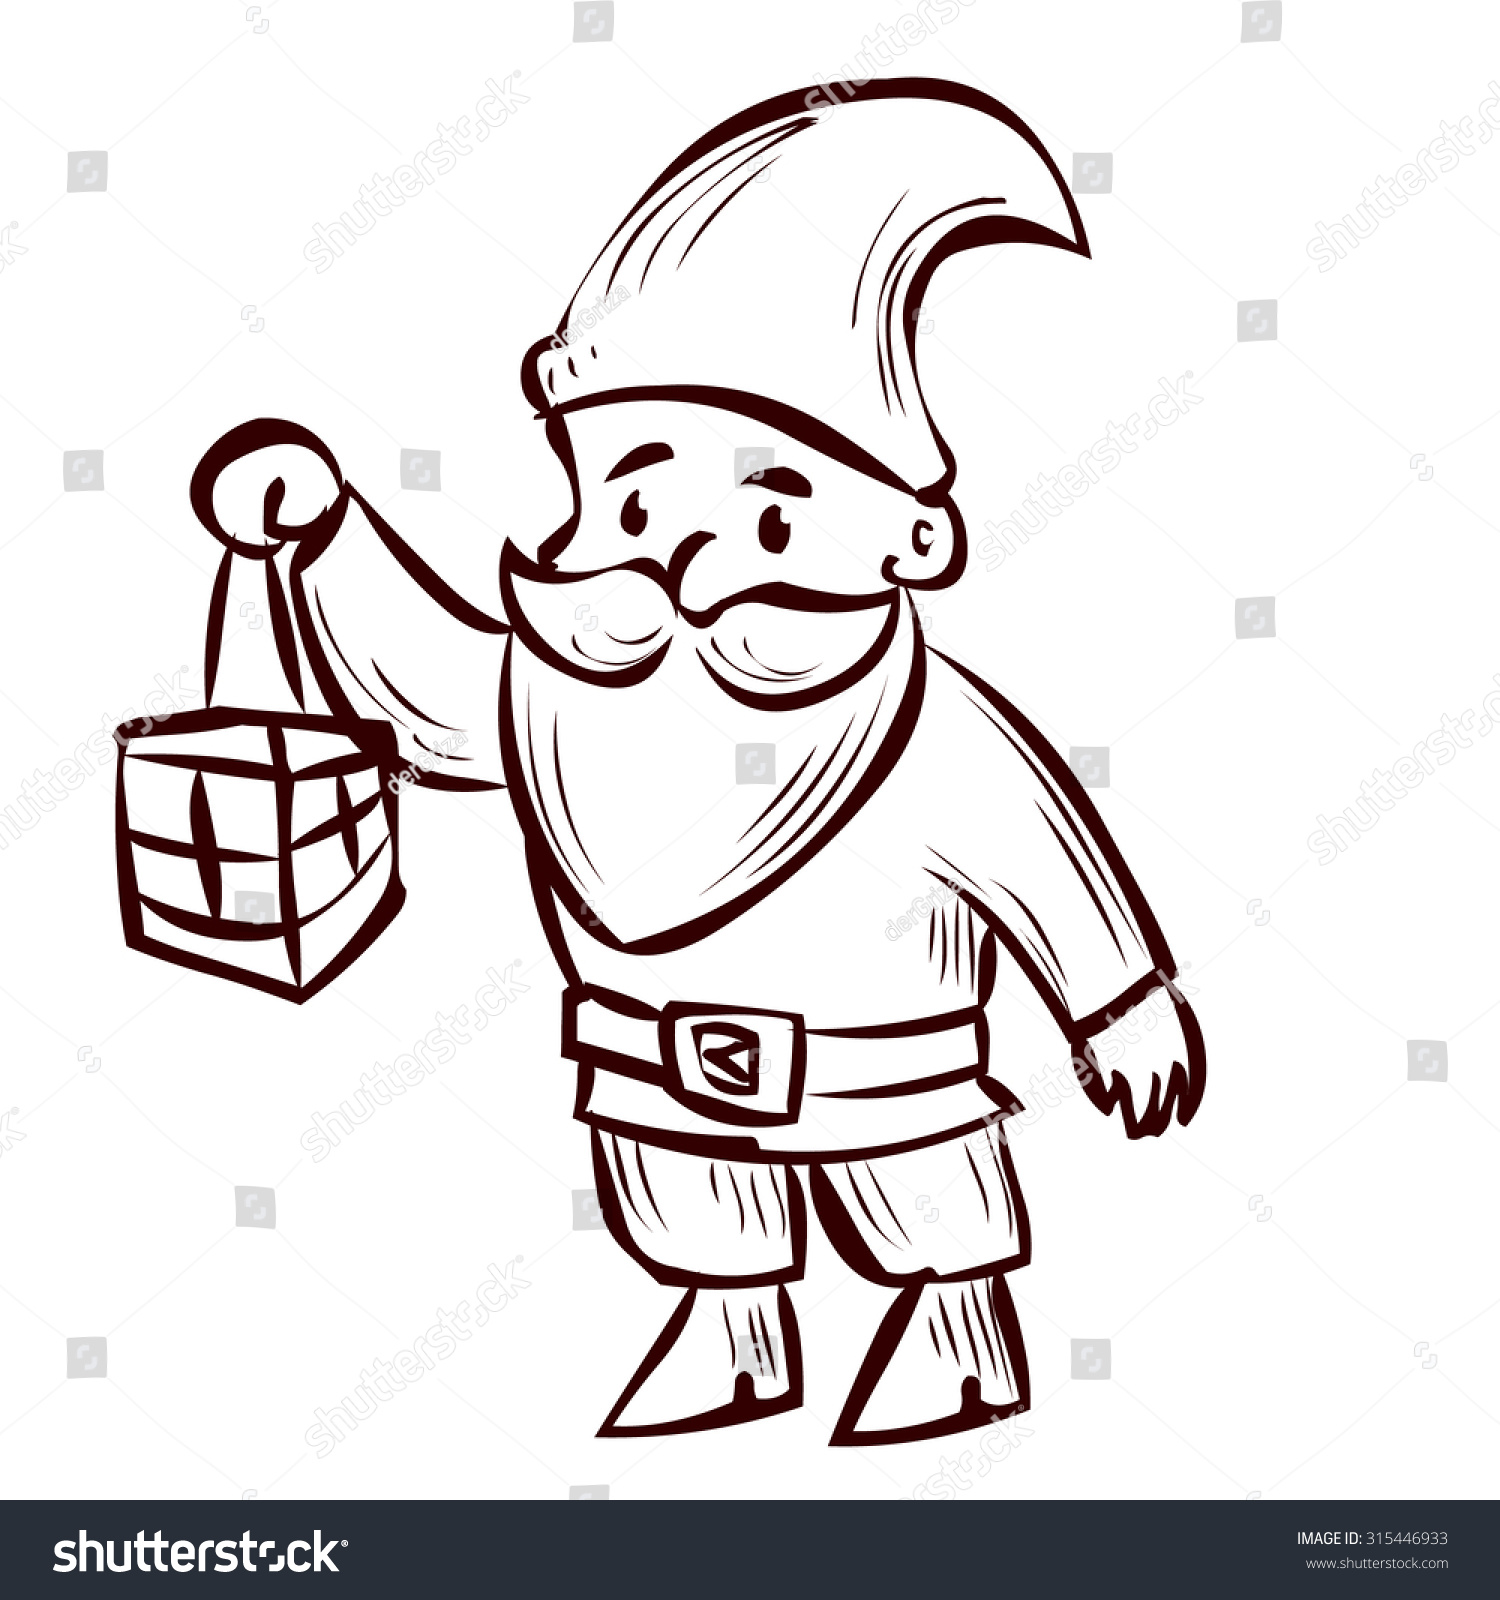 Hand Drawn Garden Gnome With Lantern In Cartoon Vector Illustration